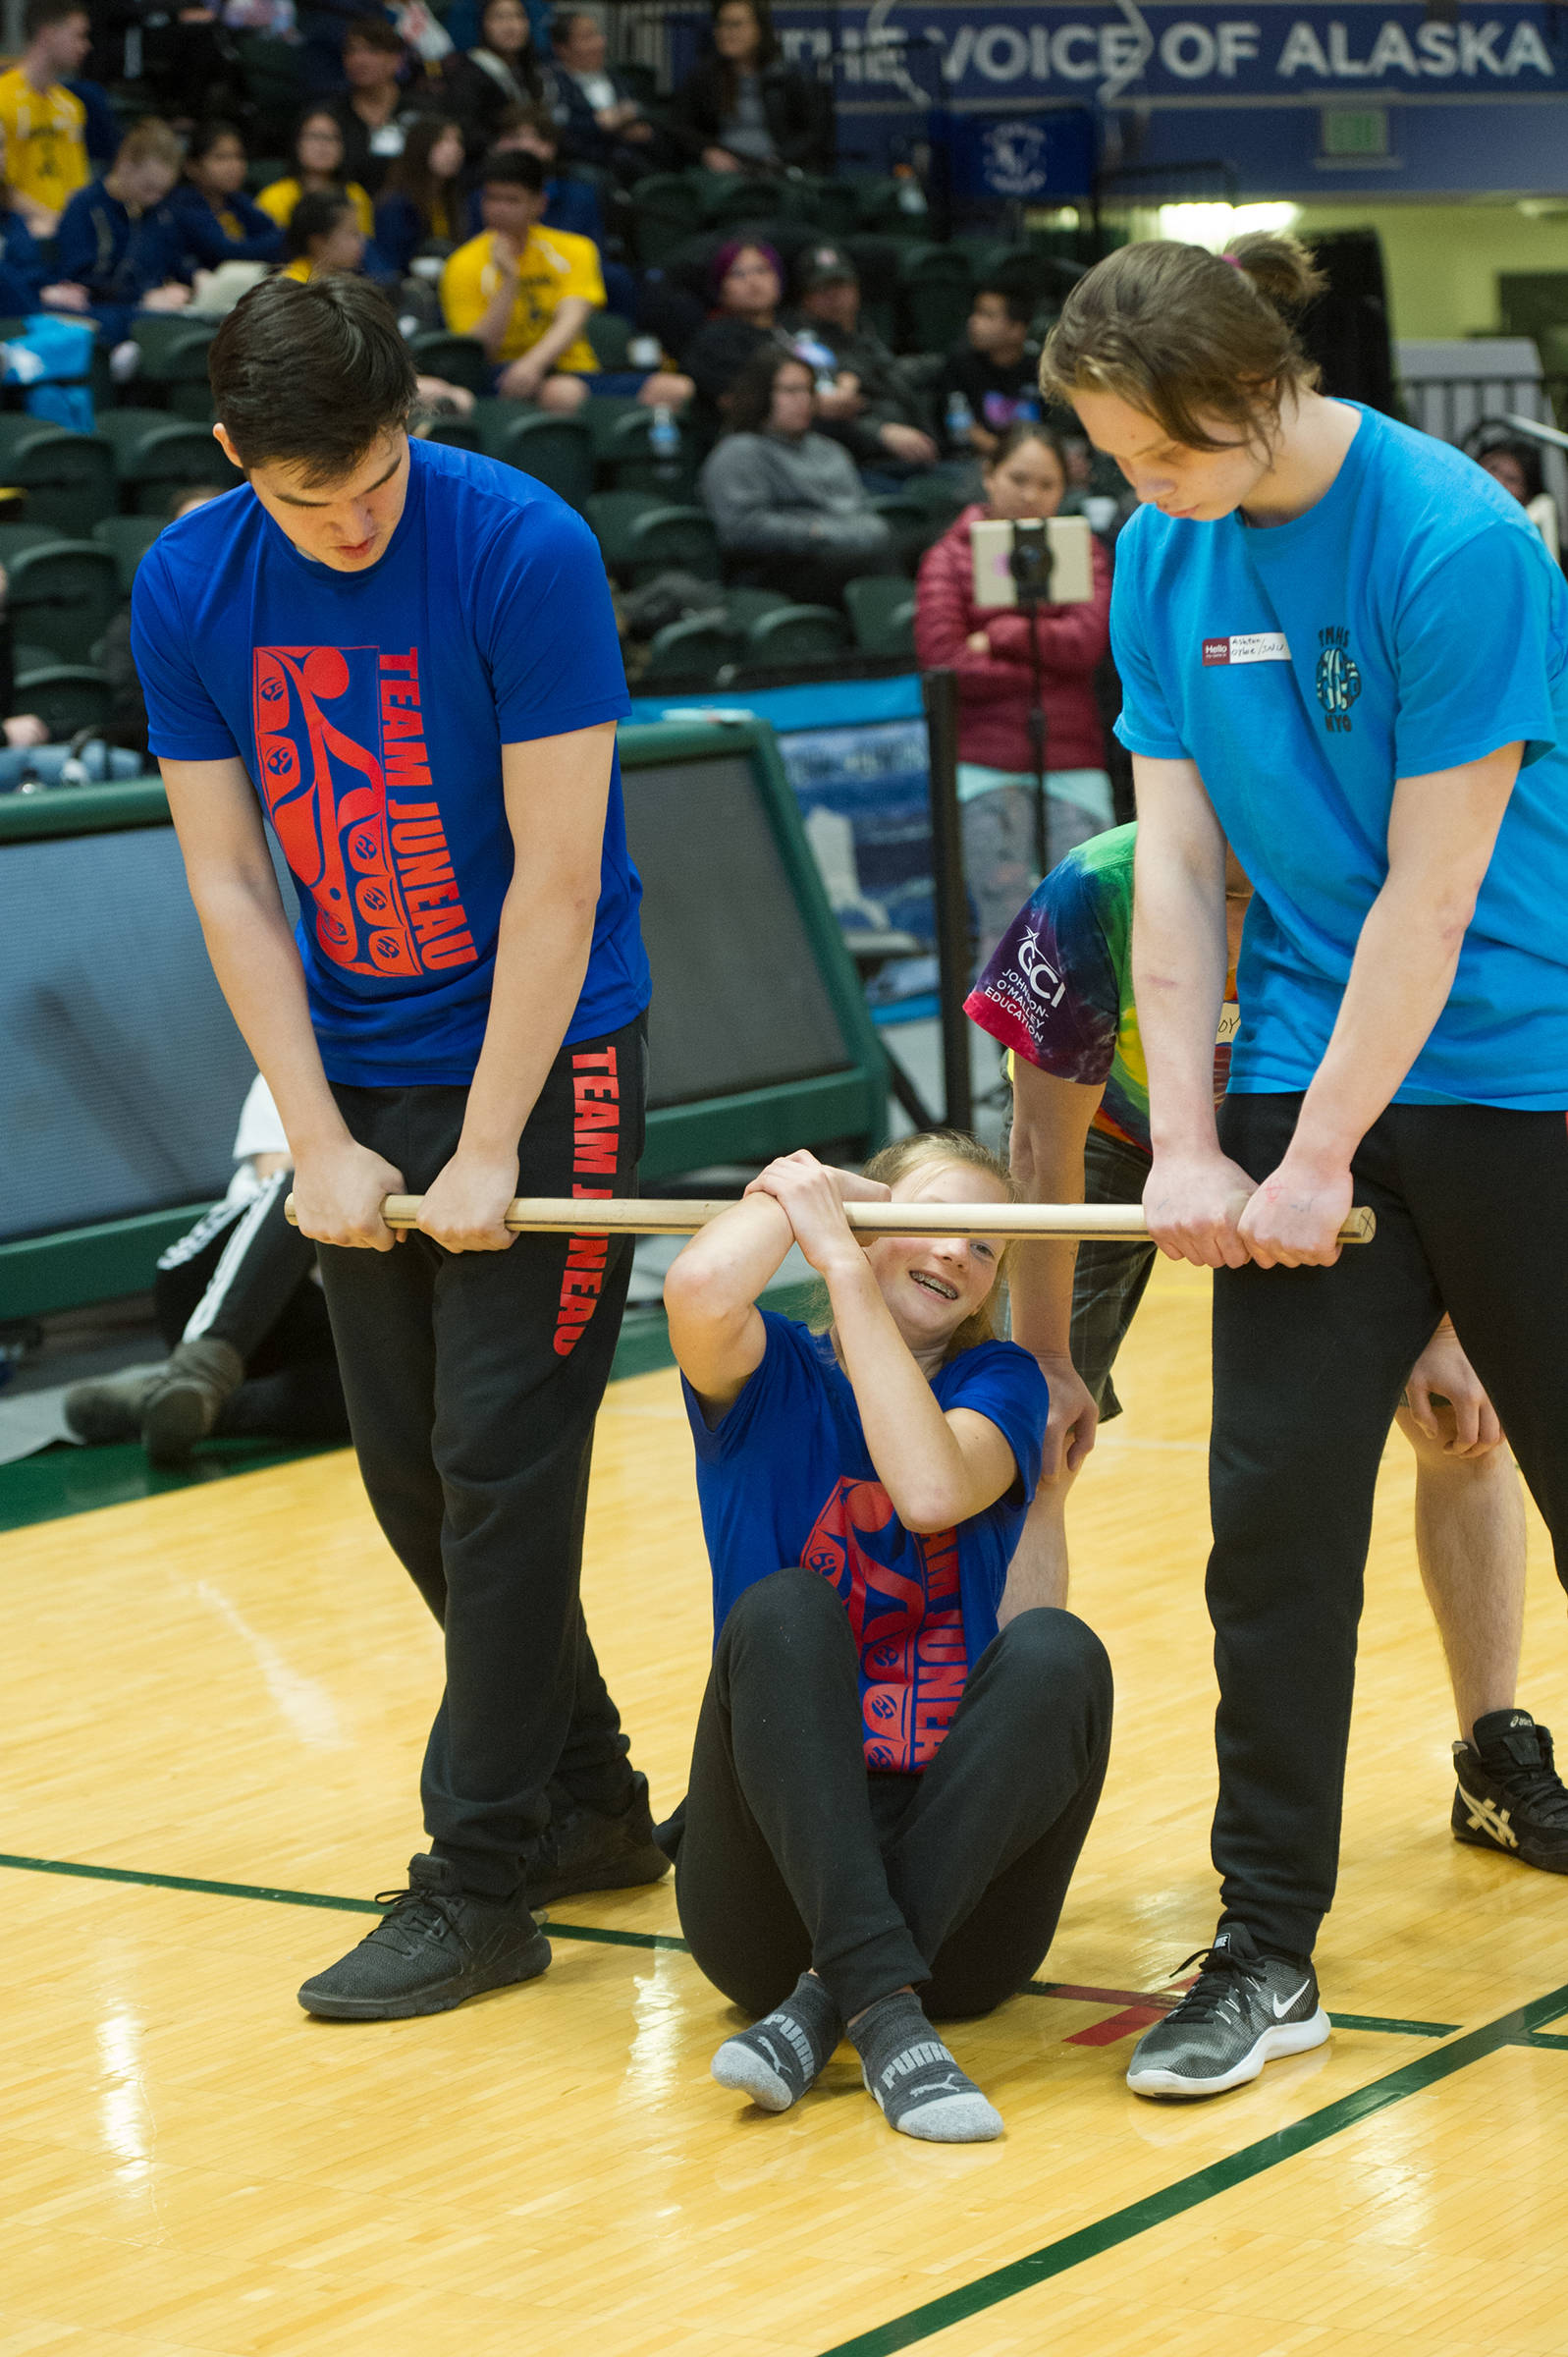 Skylar Tuckwood gets ready to be carried by Ashton Olyloe and Josh Sheakley in the wrist carry at the 2019 NYO Games at the Alaska Airlines Center in Anchorage, Alaska, on Thursday, April 25, 2019. (Michael Dinneen | For the Juneau Empire)